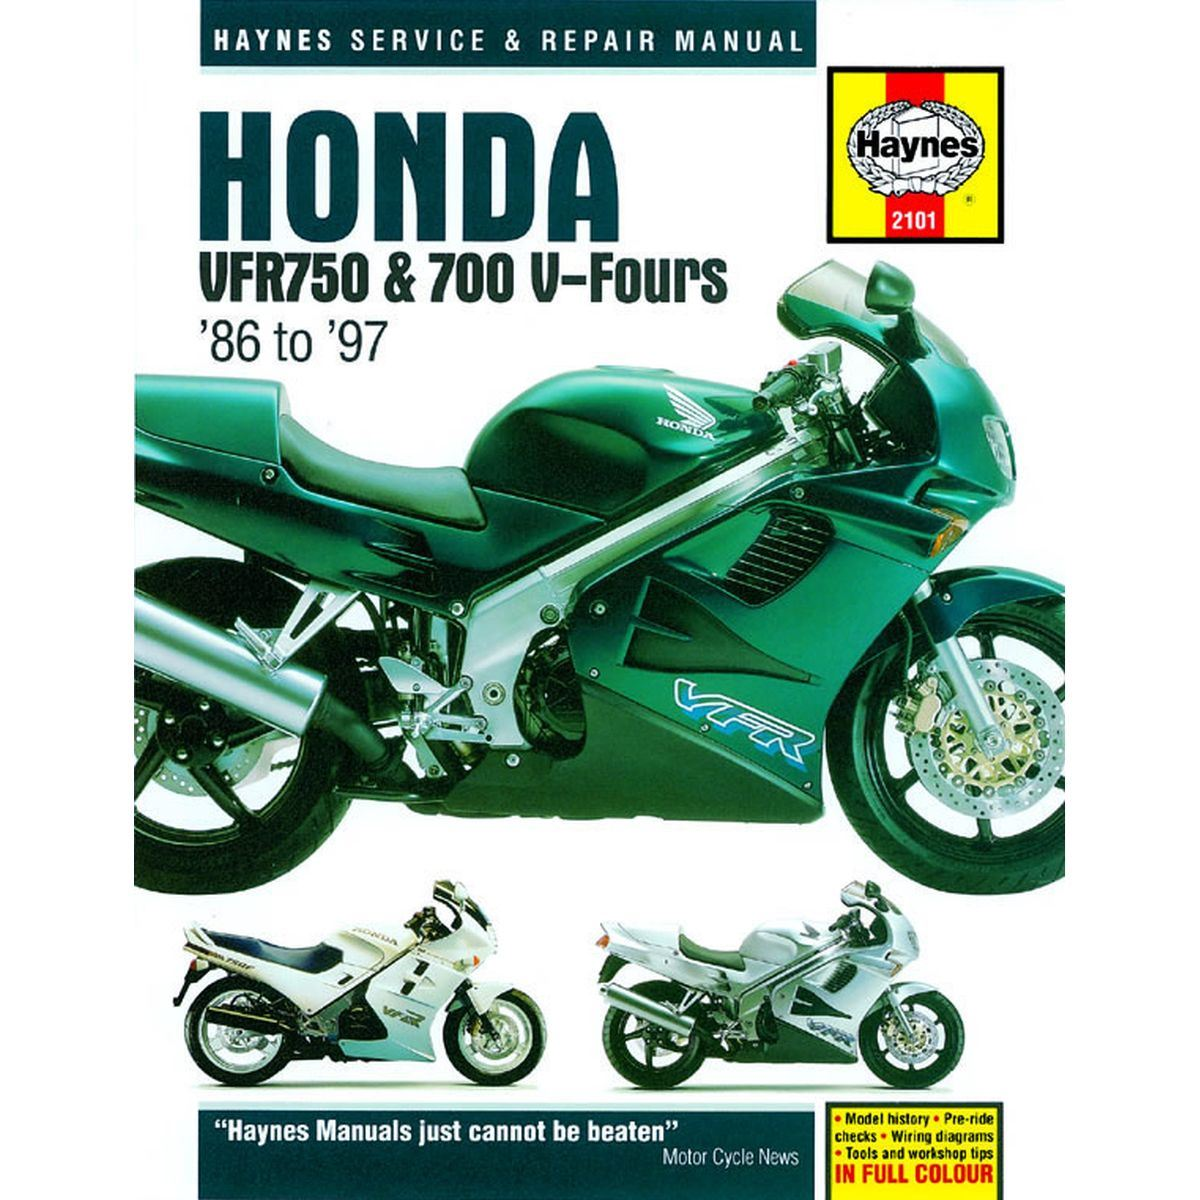 haynes manual for honda vfr750 700 v fours 86 to 97 ebay rh ebay co uk